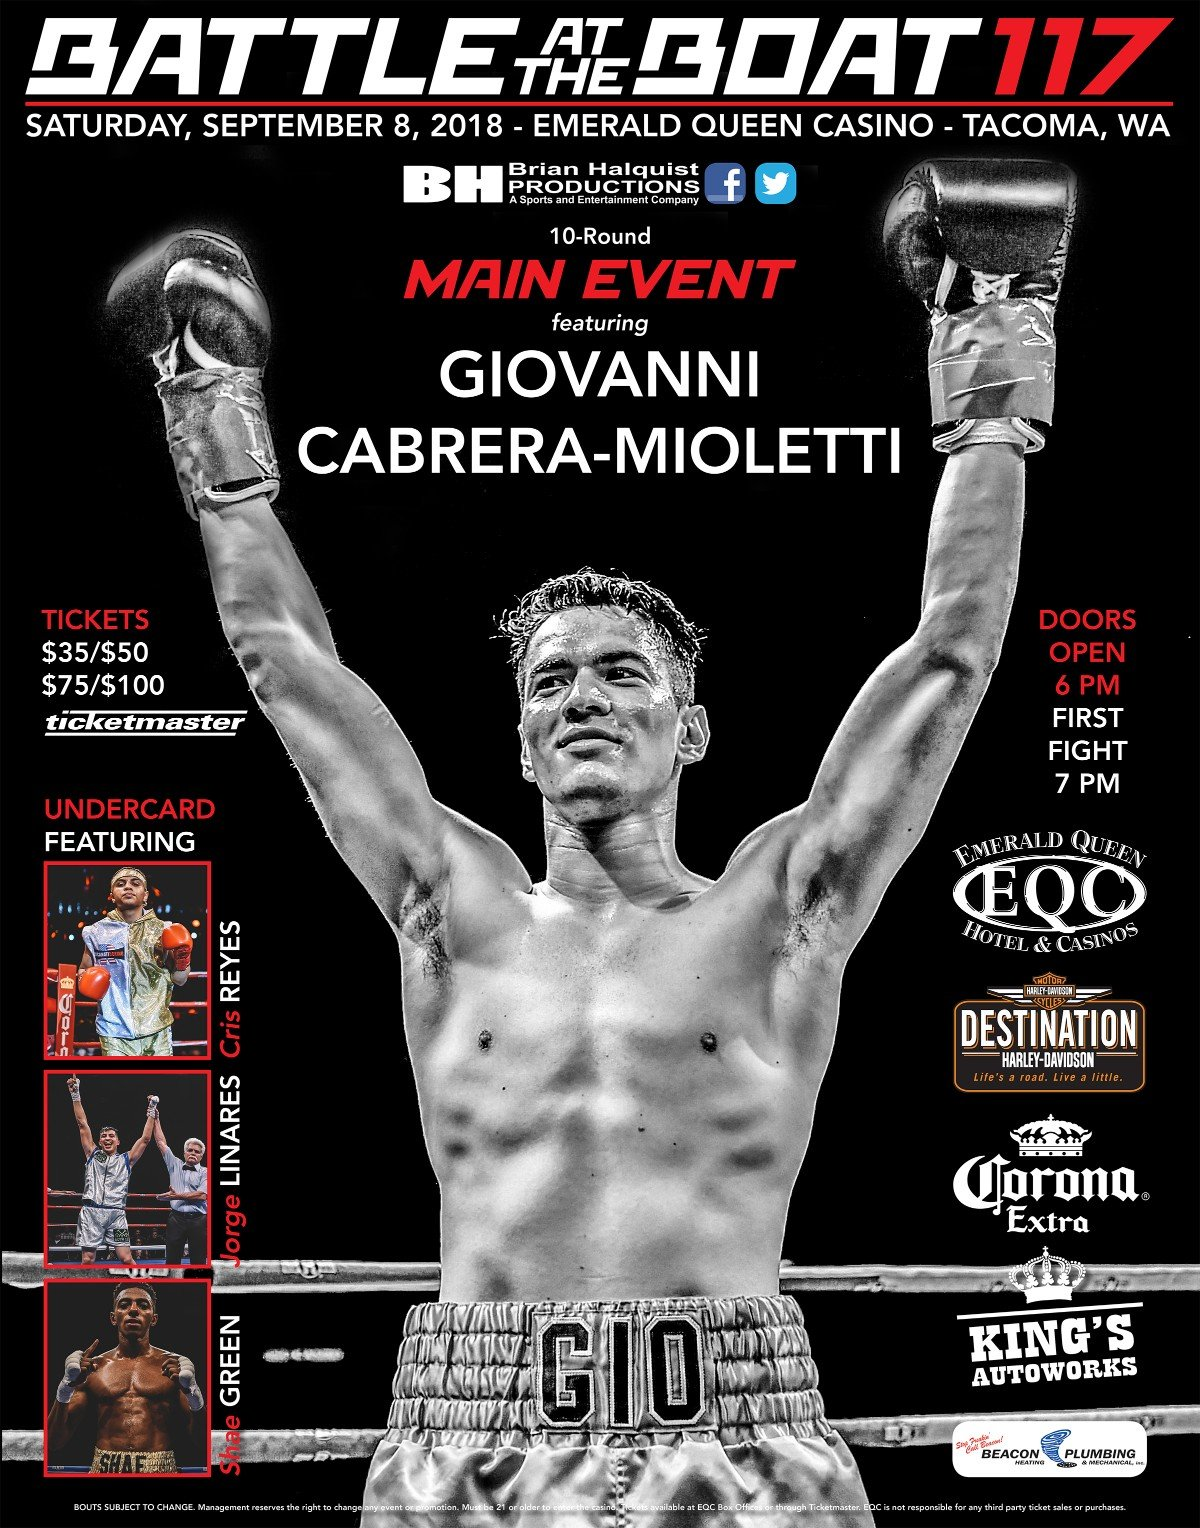 Giovanni Cabrera Mioletti - Following quite a bit of shuffling Giovanni Cabrera-Mioletti now finally knows who he will be facing in the main event at Battle at the Boat 117.